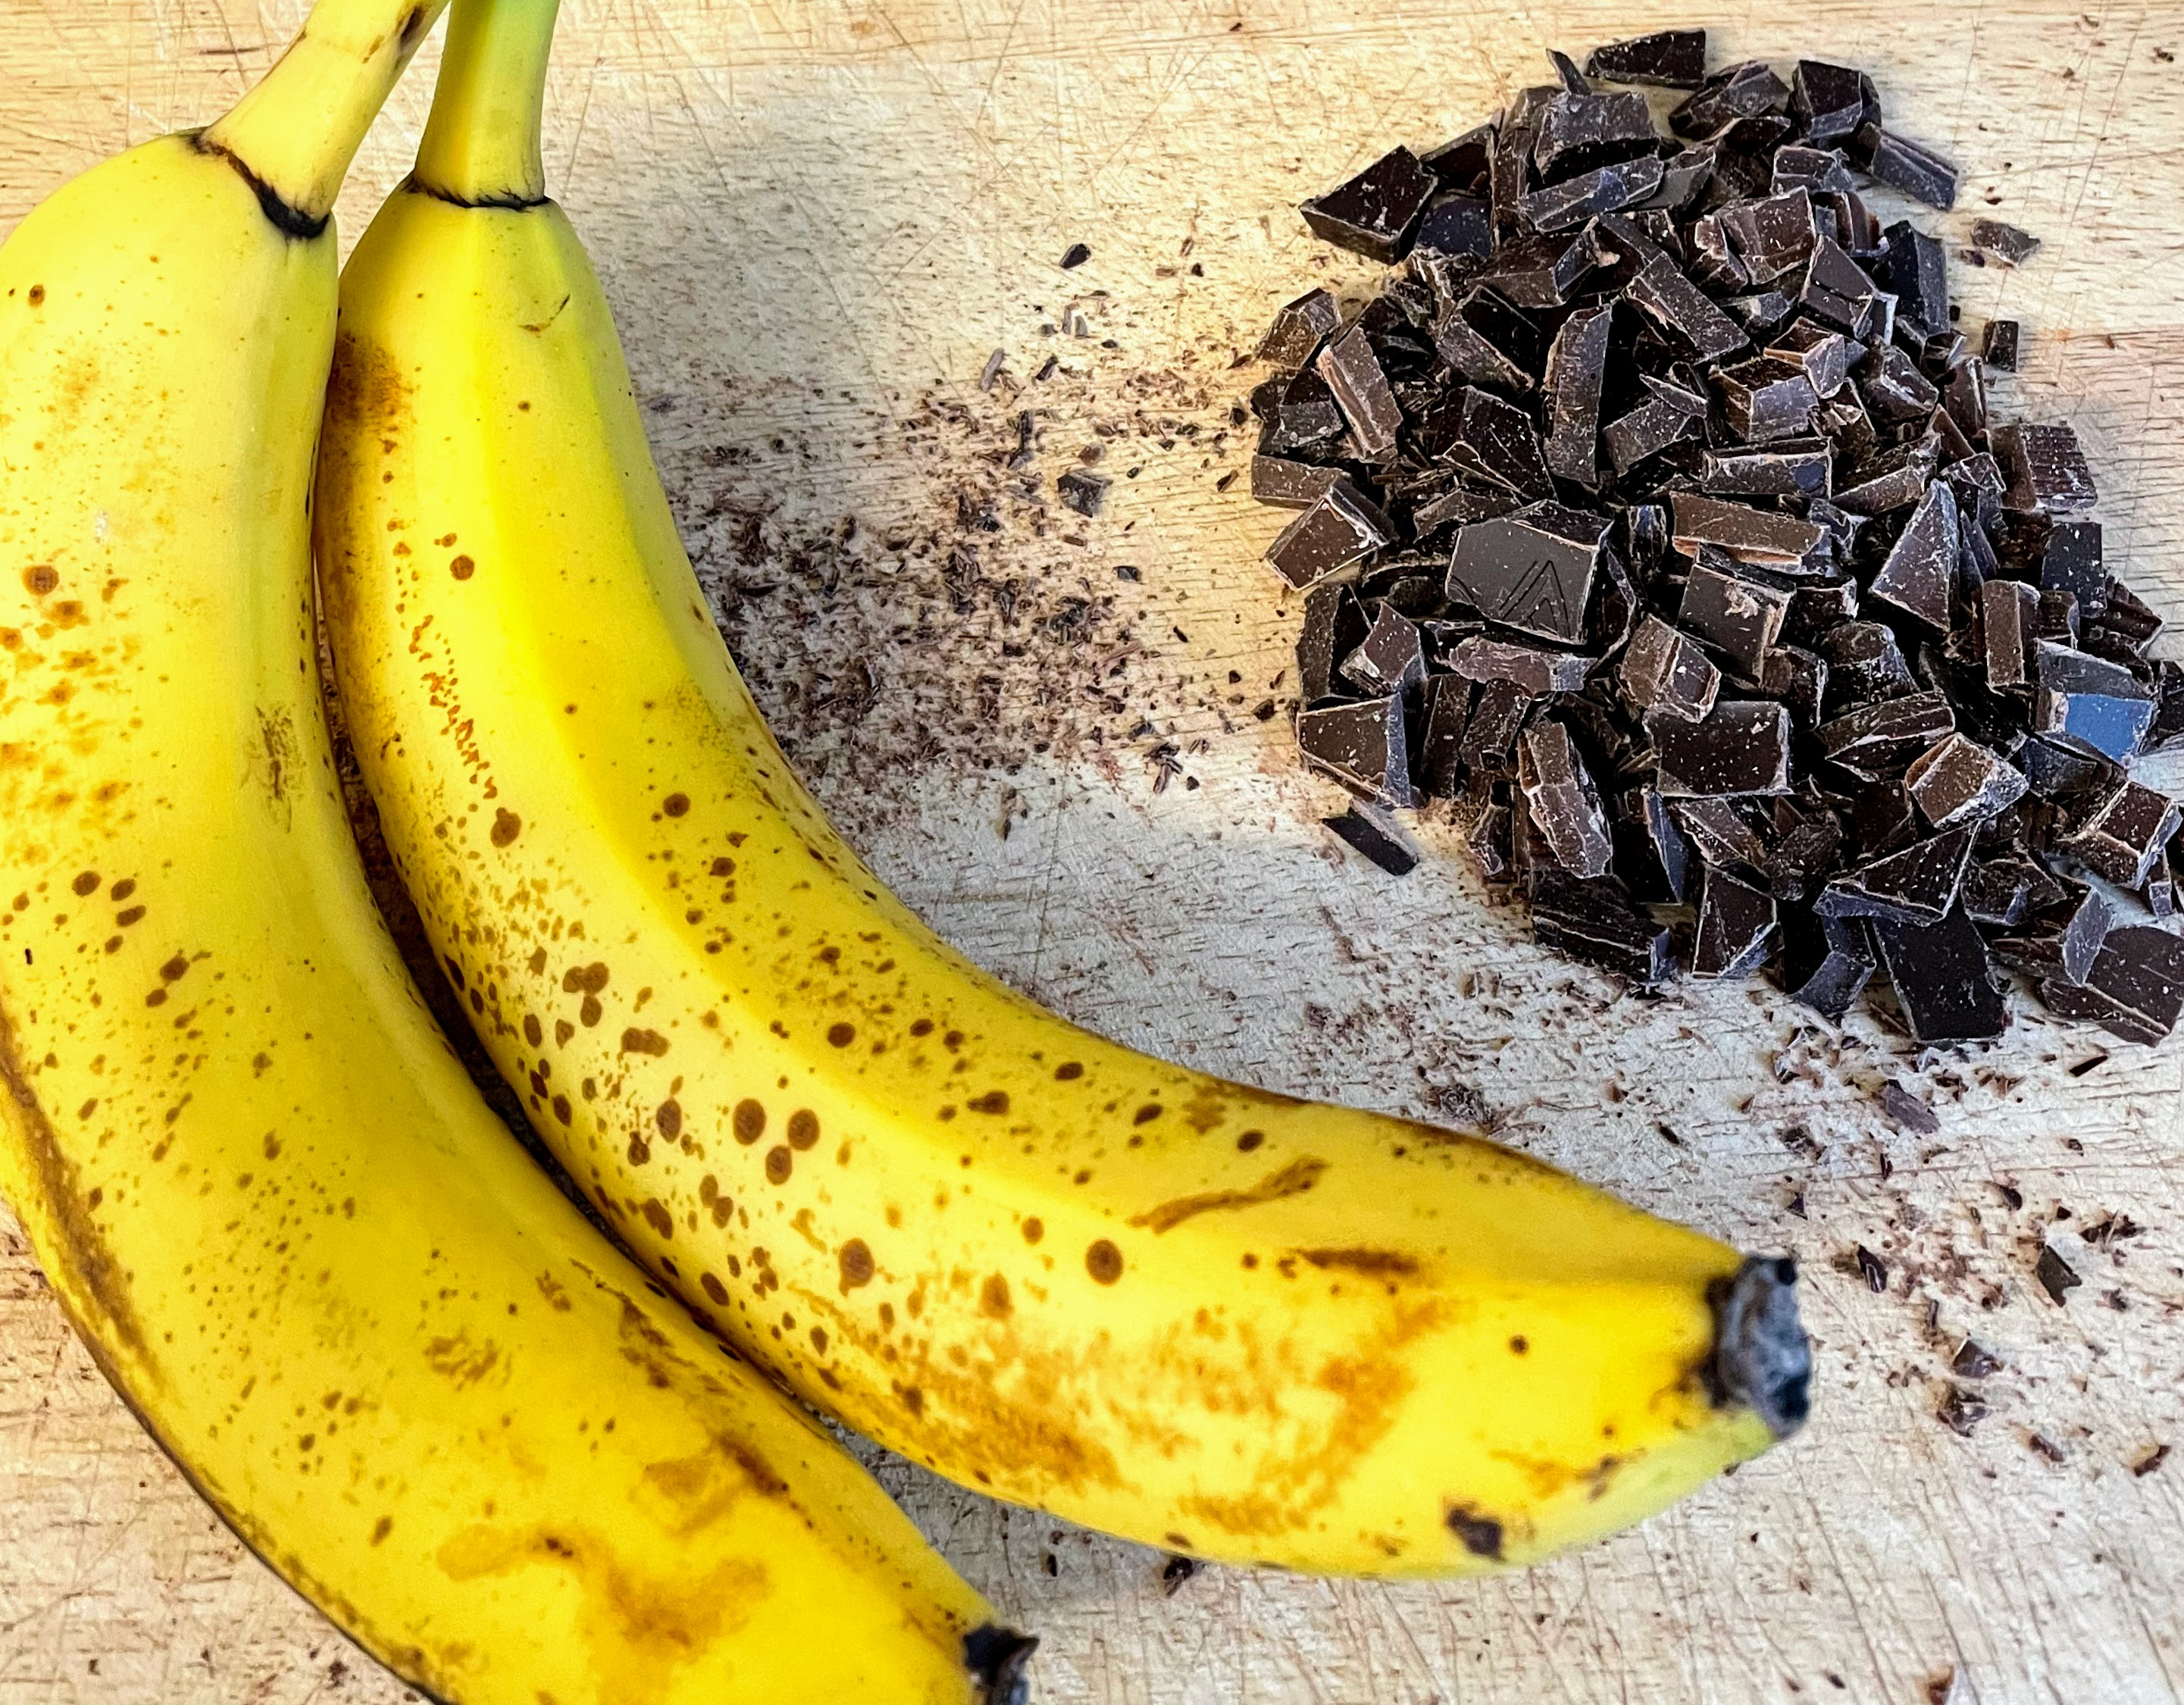 My bananas - still mostly yellow but with a decent number of brown spots - next to a pile of chopped dark chocolate.